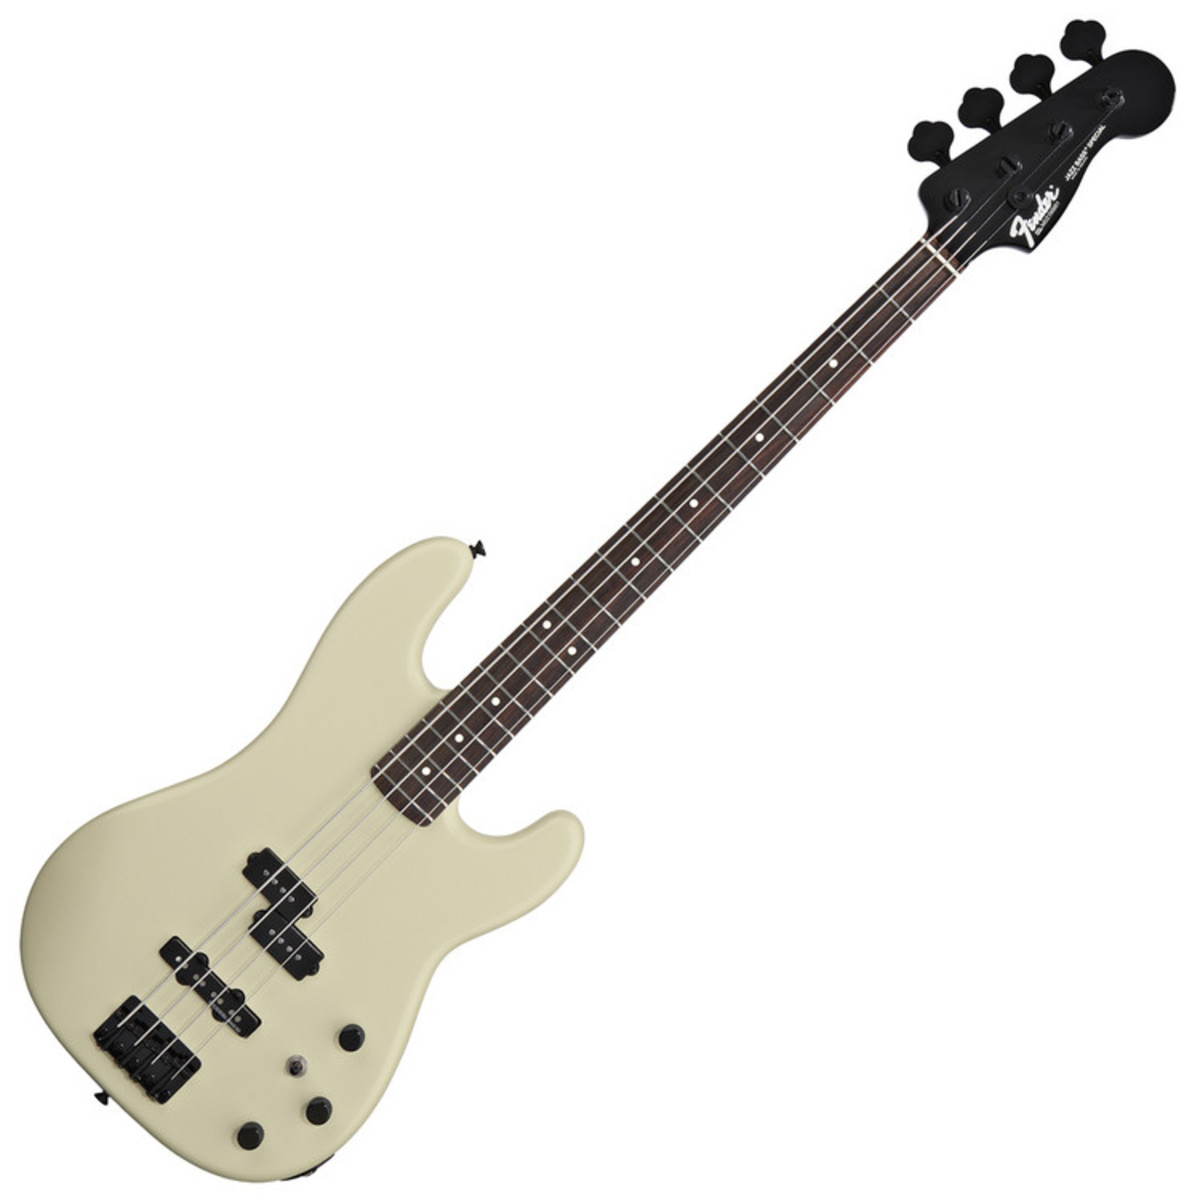 Circuito Jazz Bass Pasivo : Fender duff mckagan precision bass pearl white en gear music